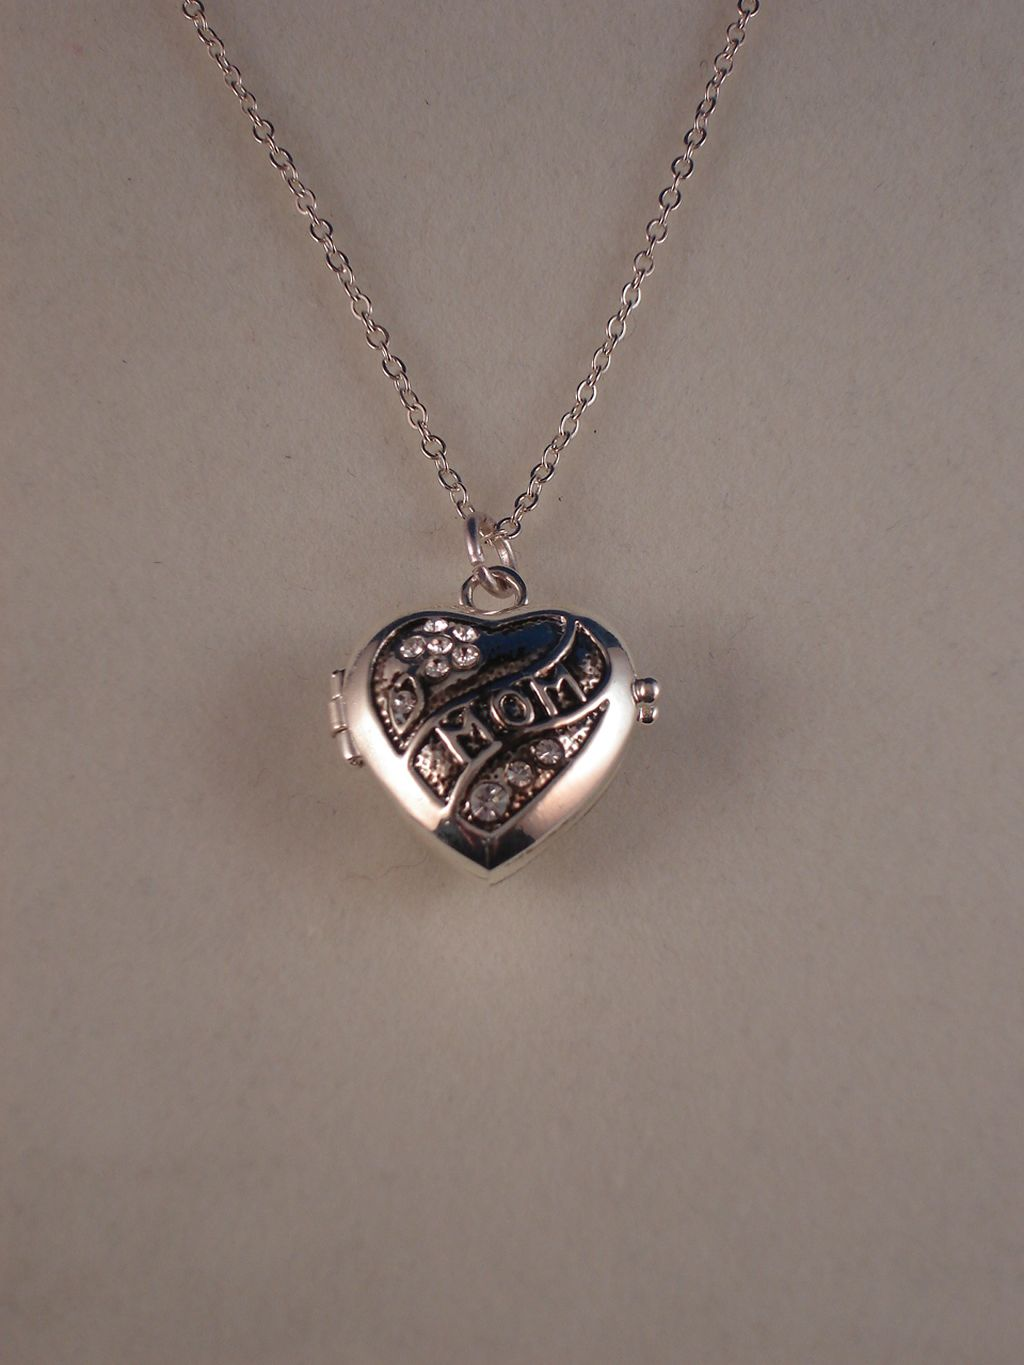 Picture Holder Mother`s Day Necklace, Heart Pendant, Silver Color, Non-Allergic Jewelry